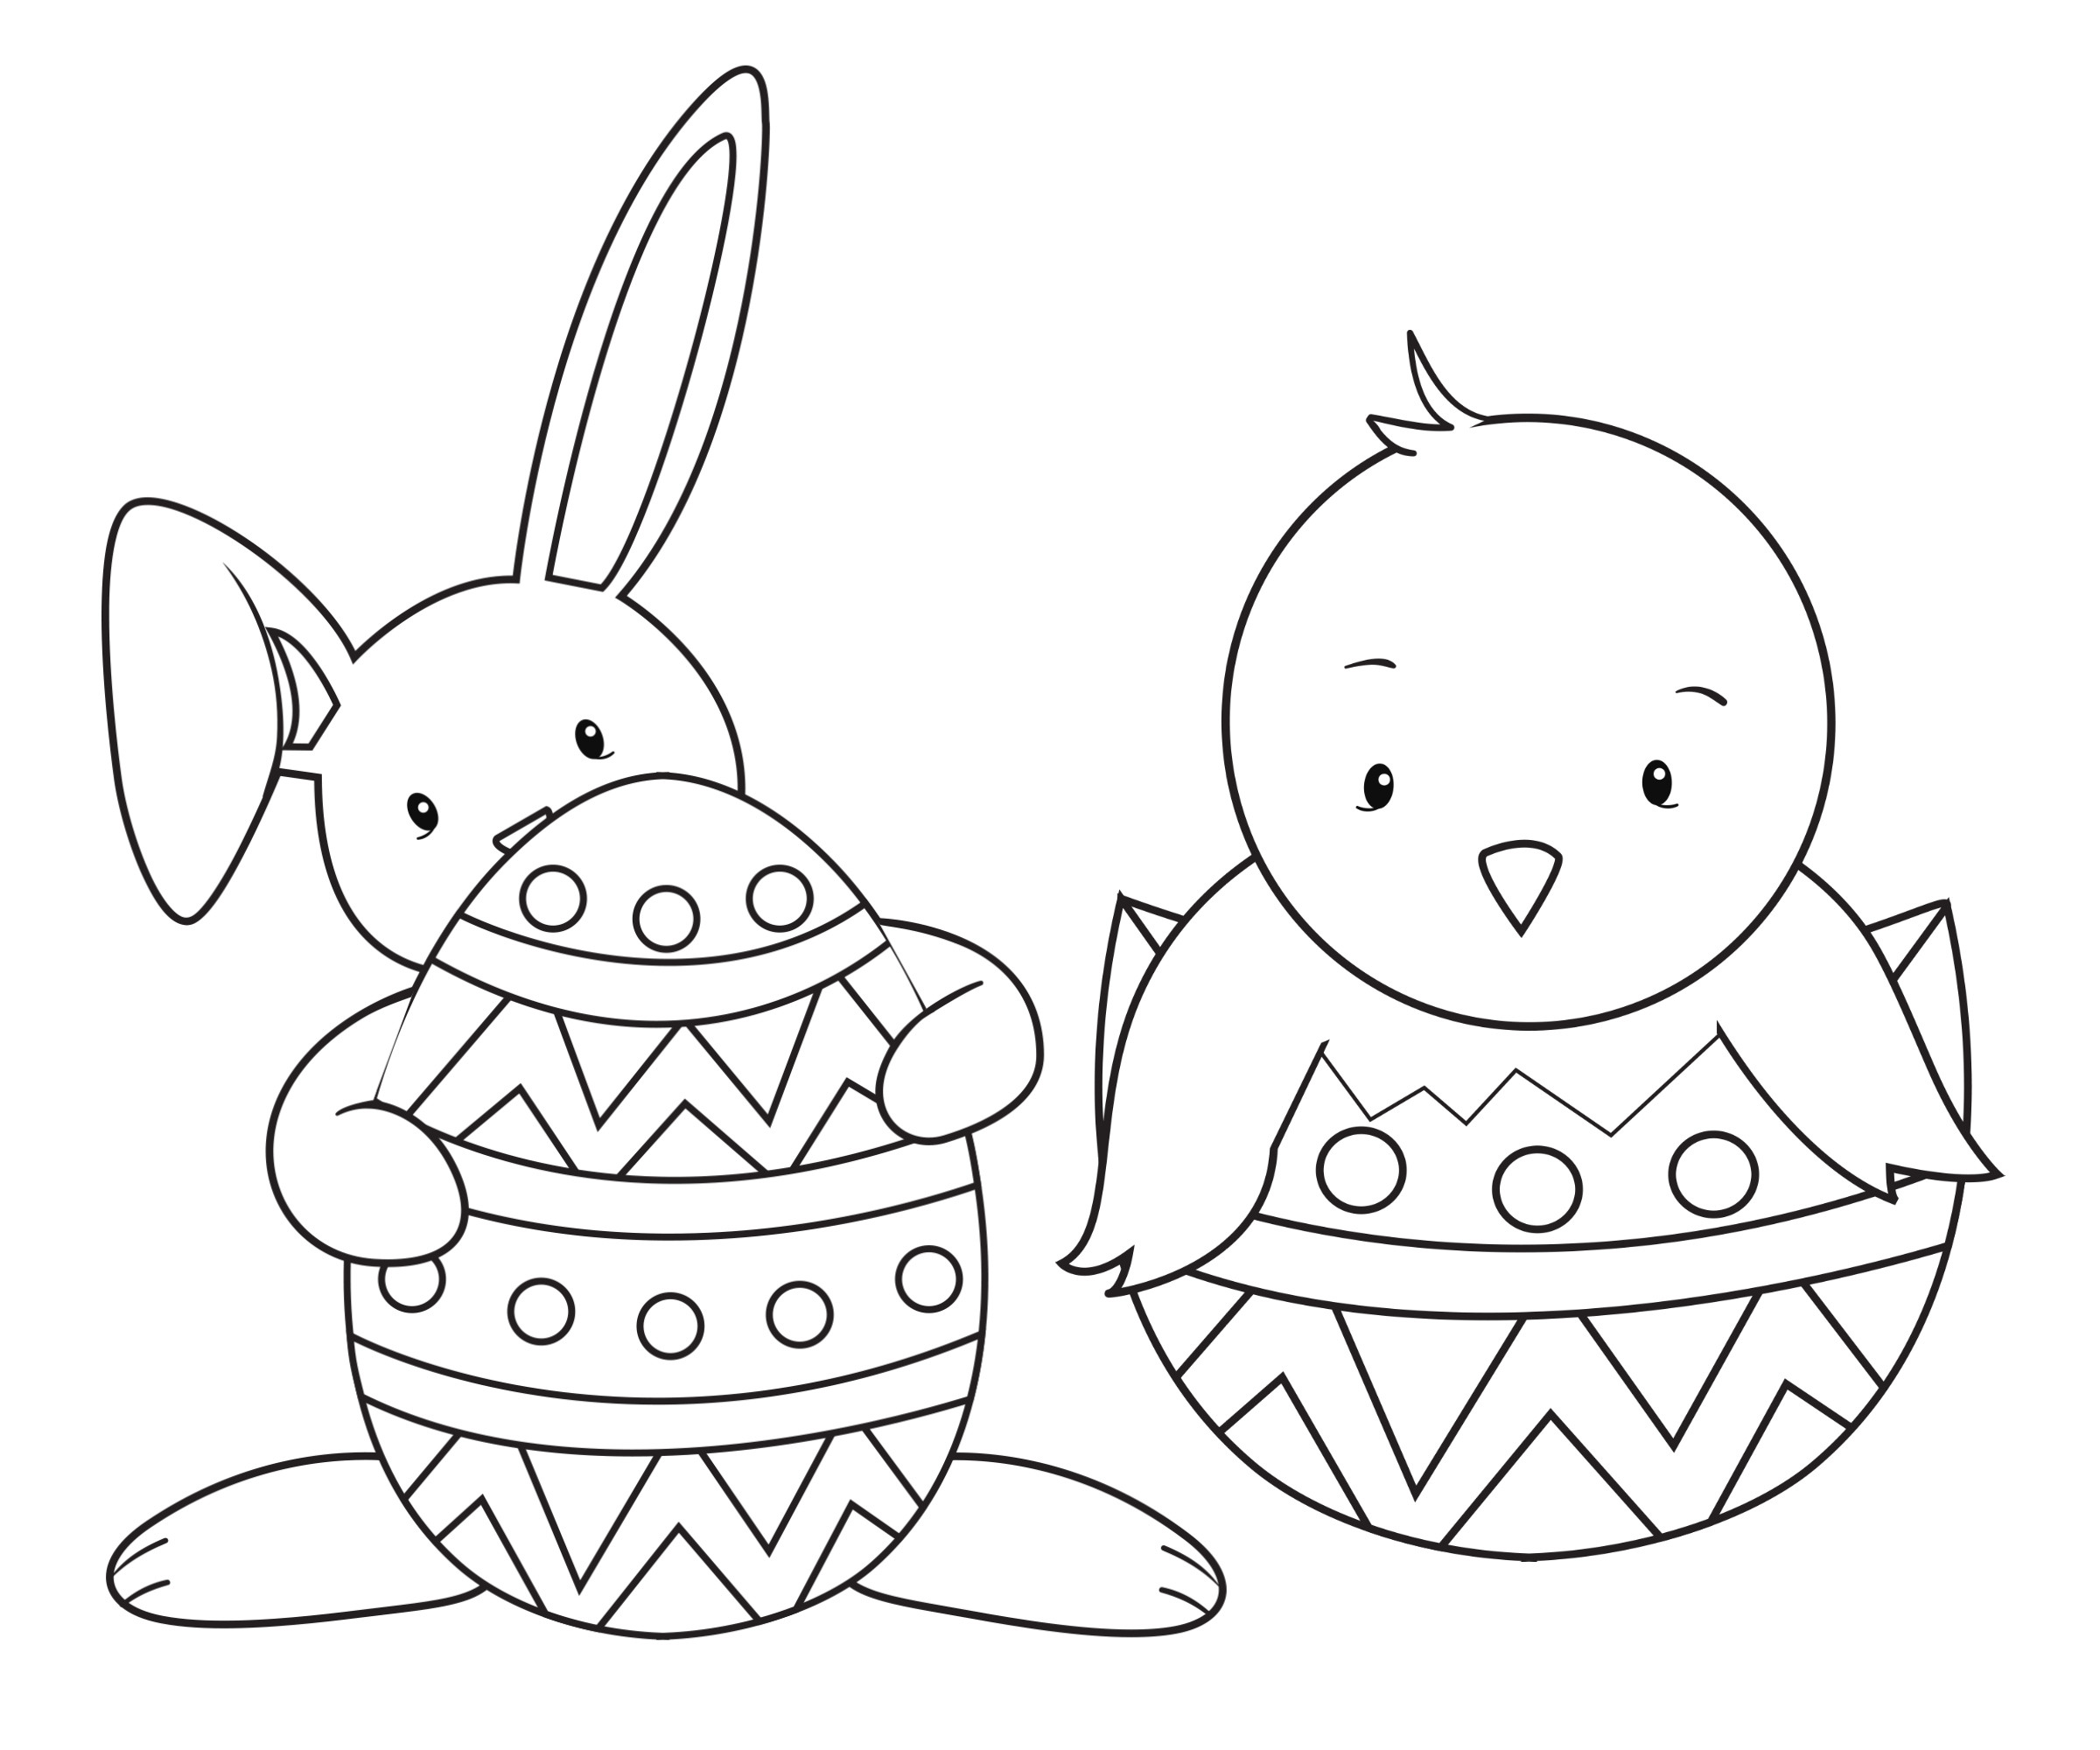 Best ideas about Coloring Pages For Kids For Easter . Save or Pin Easter Coloring Pages for Kids Crazy Little Projects Now.